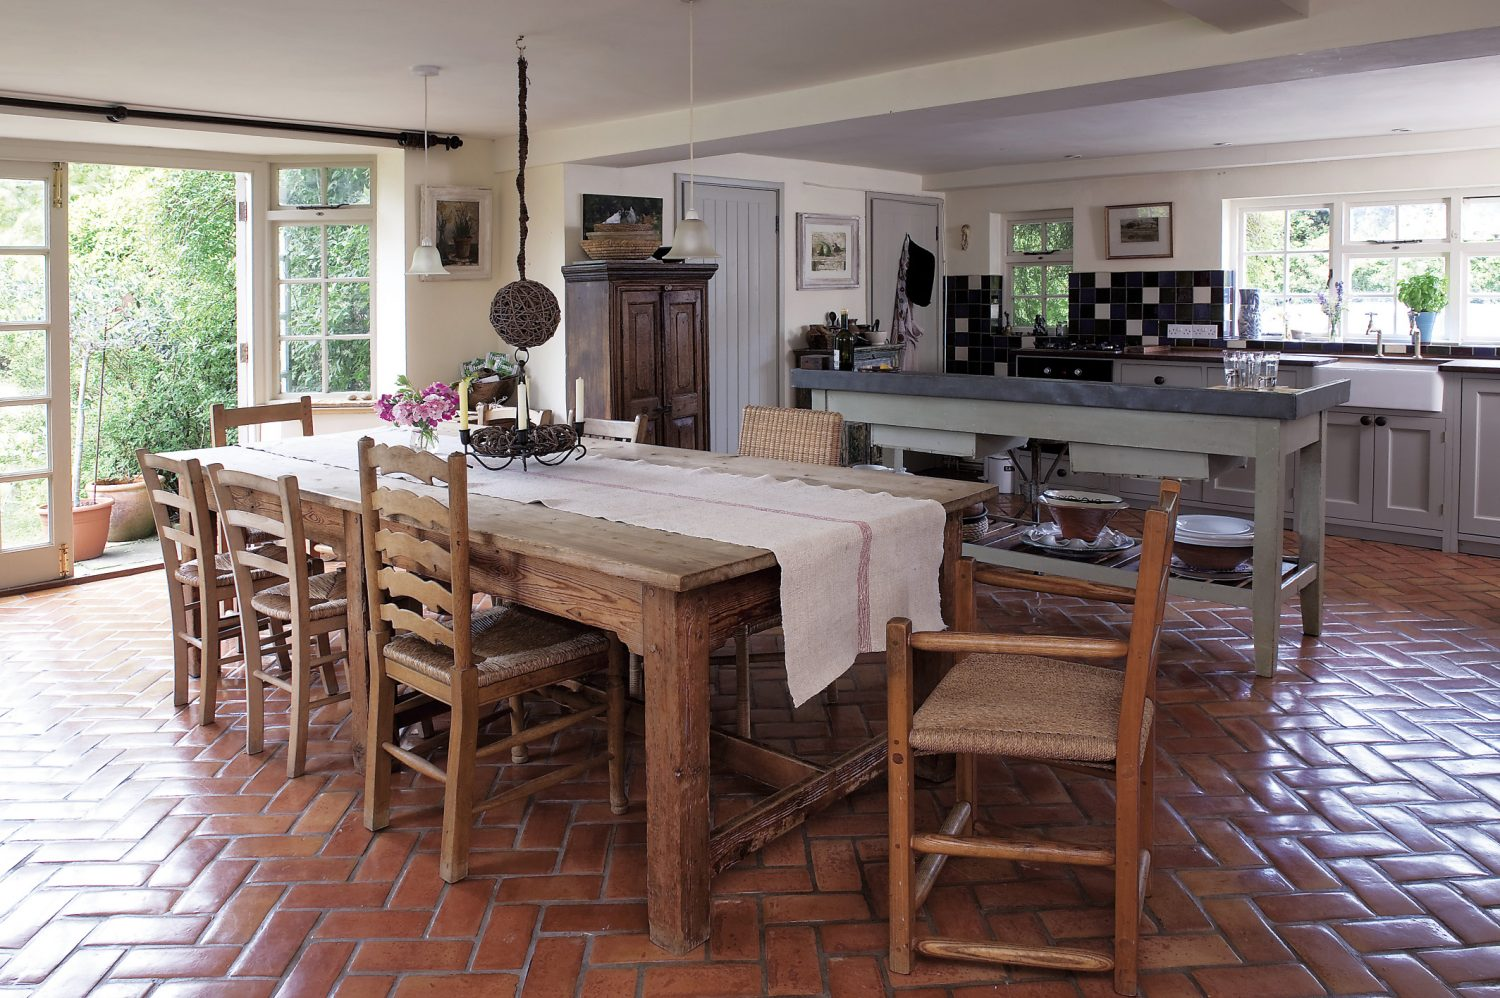 In the kitchen old French zinc-topped garden potting table makes superb six-foot preparation table and distressed French cupboard stands nearby.